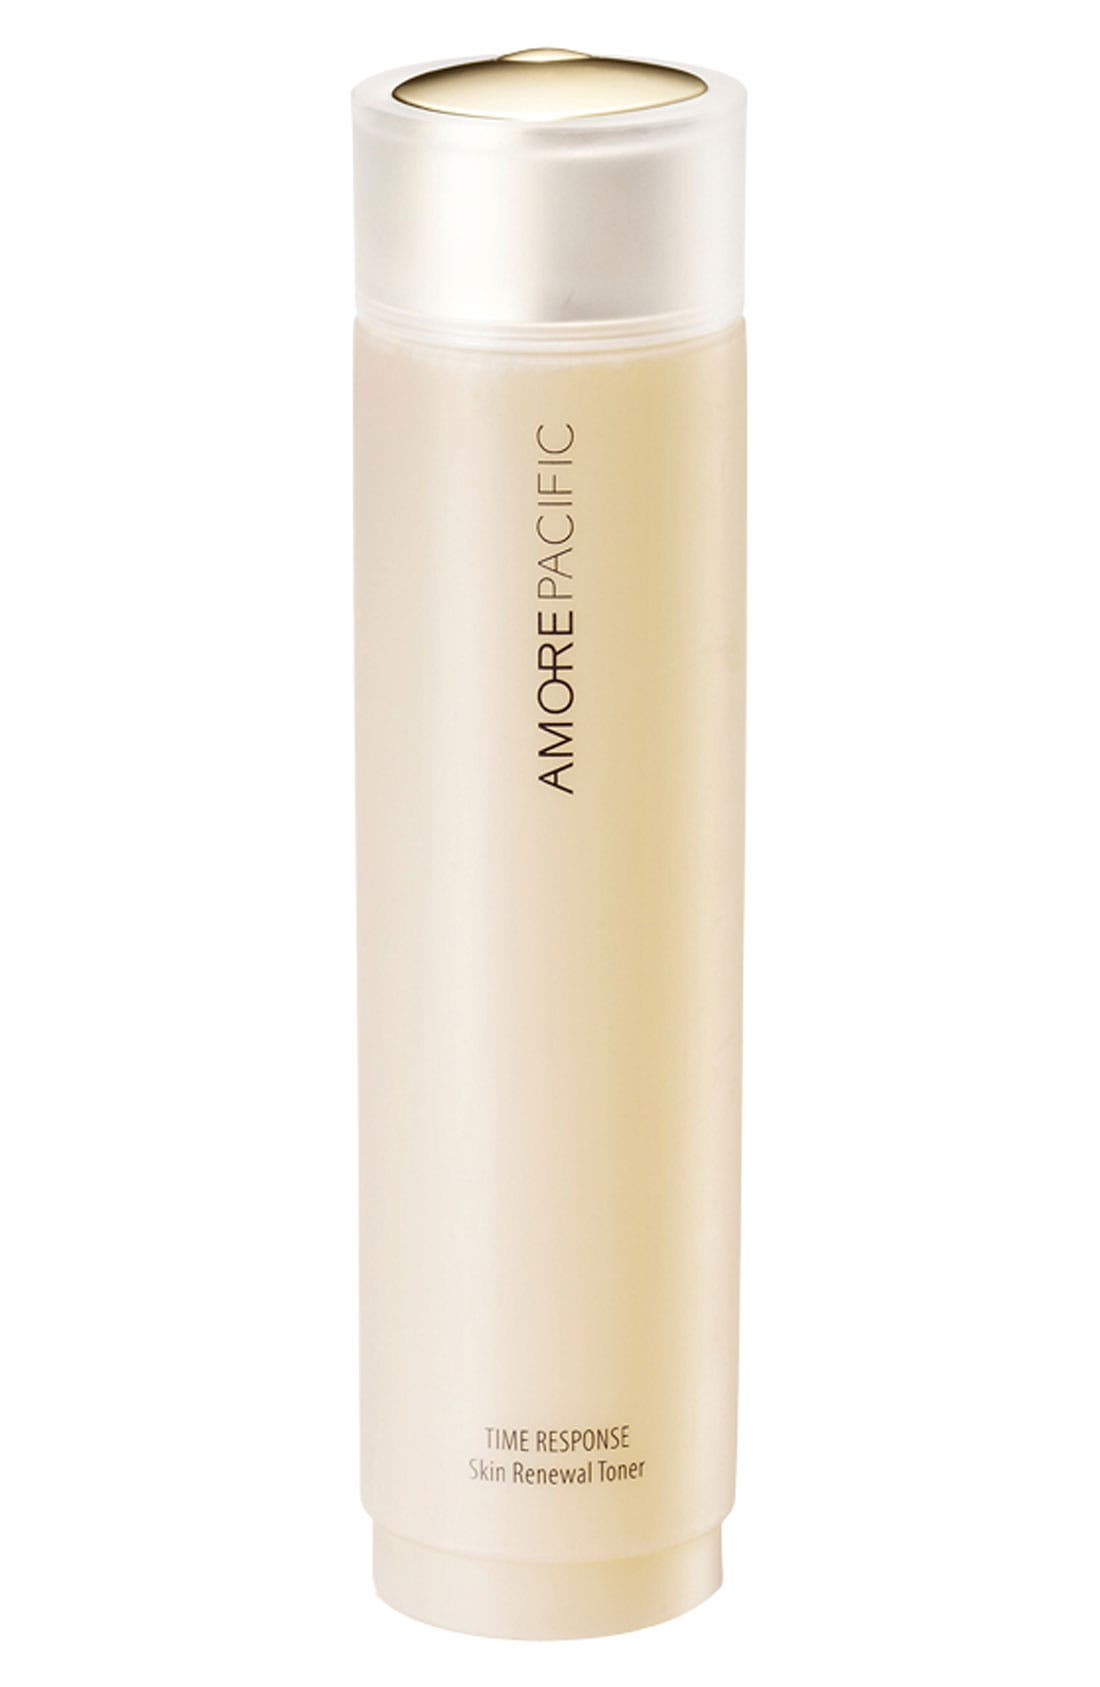 AMOREPACIFIC 'Time Response' Skin Renewal Toner